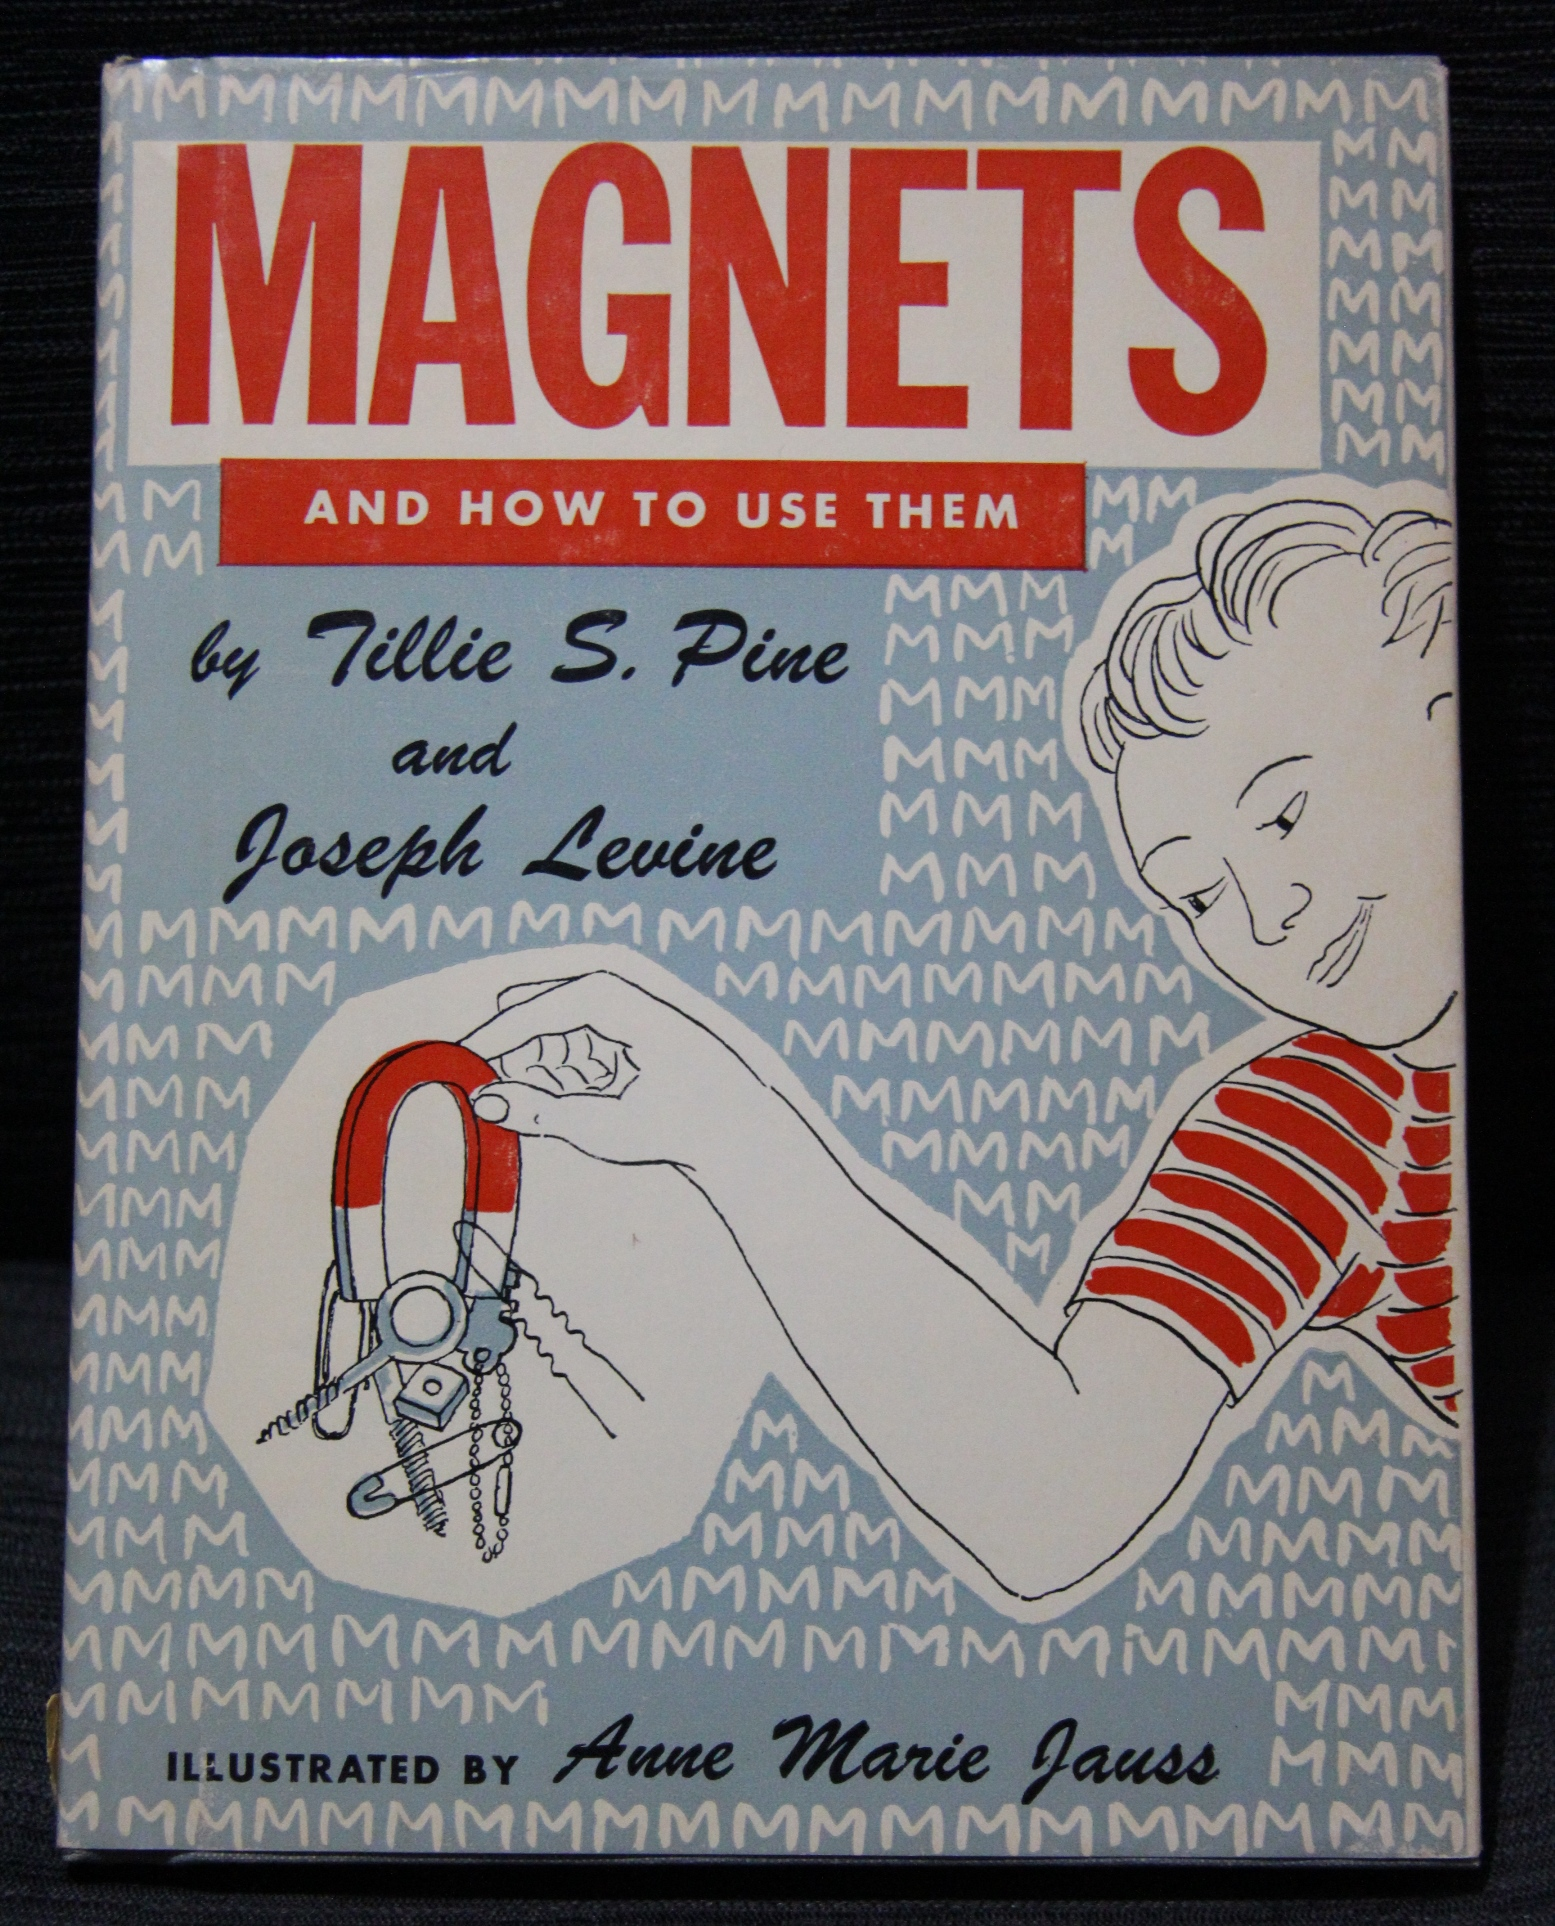 Book cover: MAGNETS and How To Use Them by Tillie S. PIne and Joseph Levine, illustrated by Anne Marie Jauss